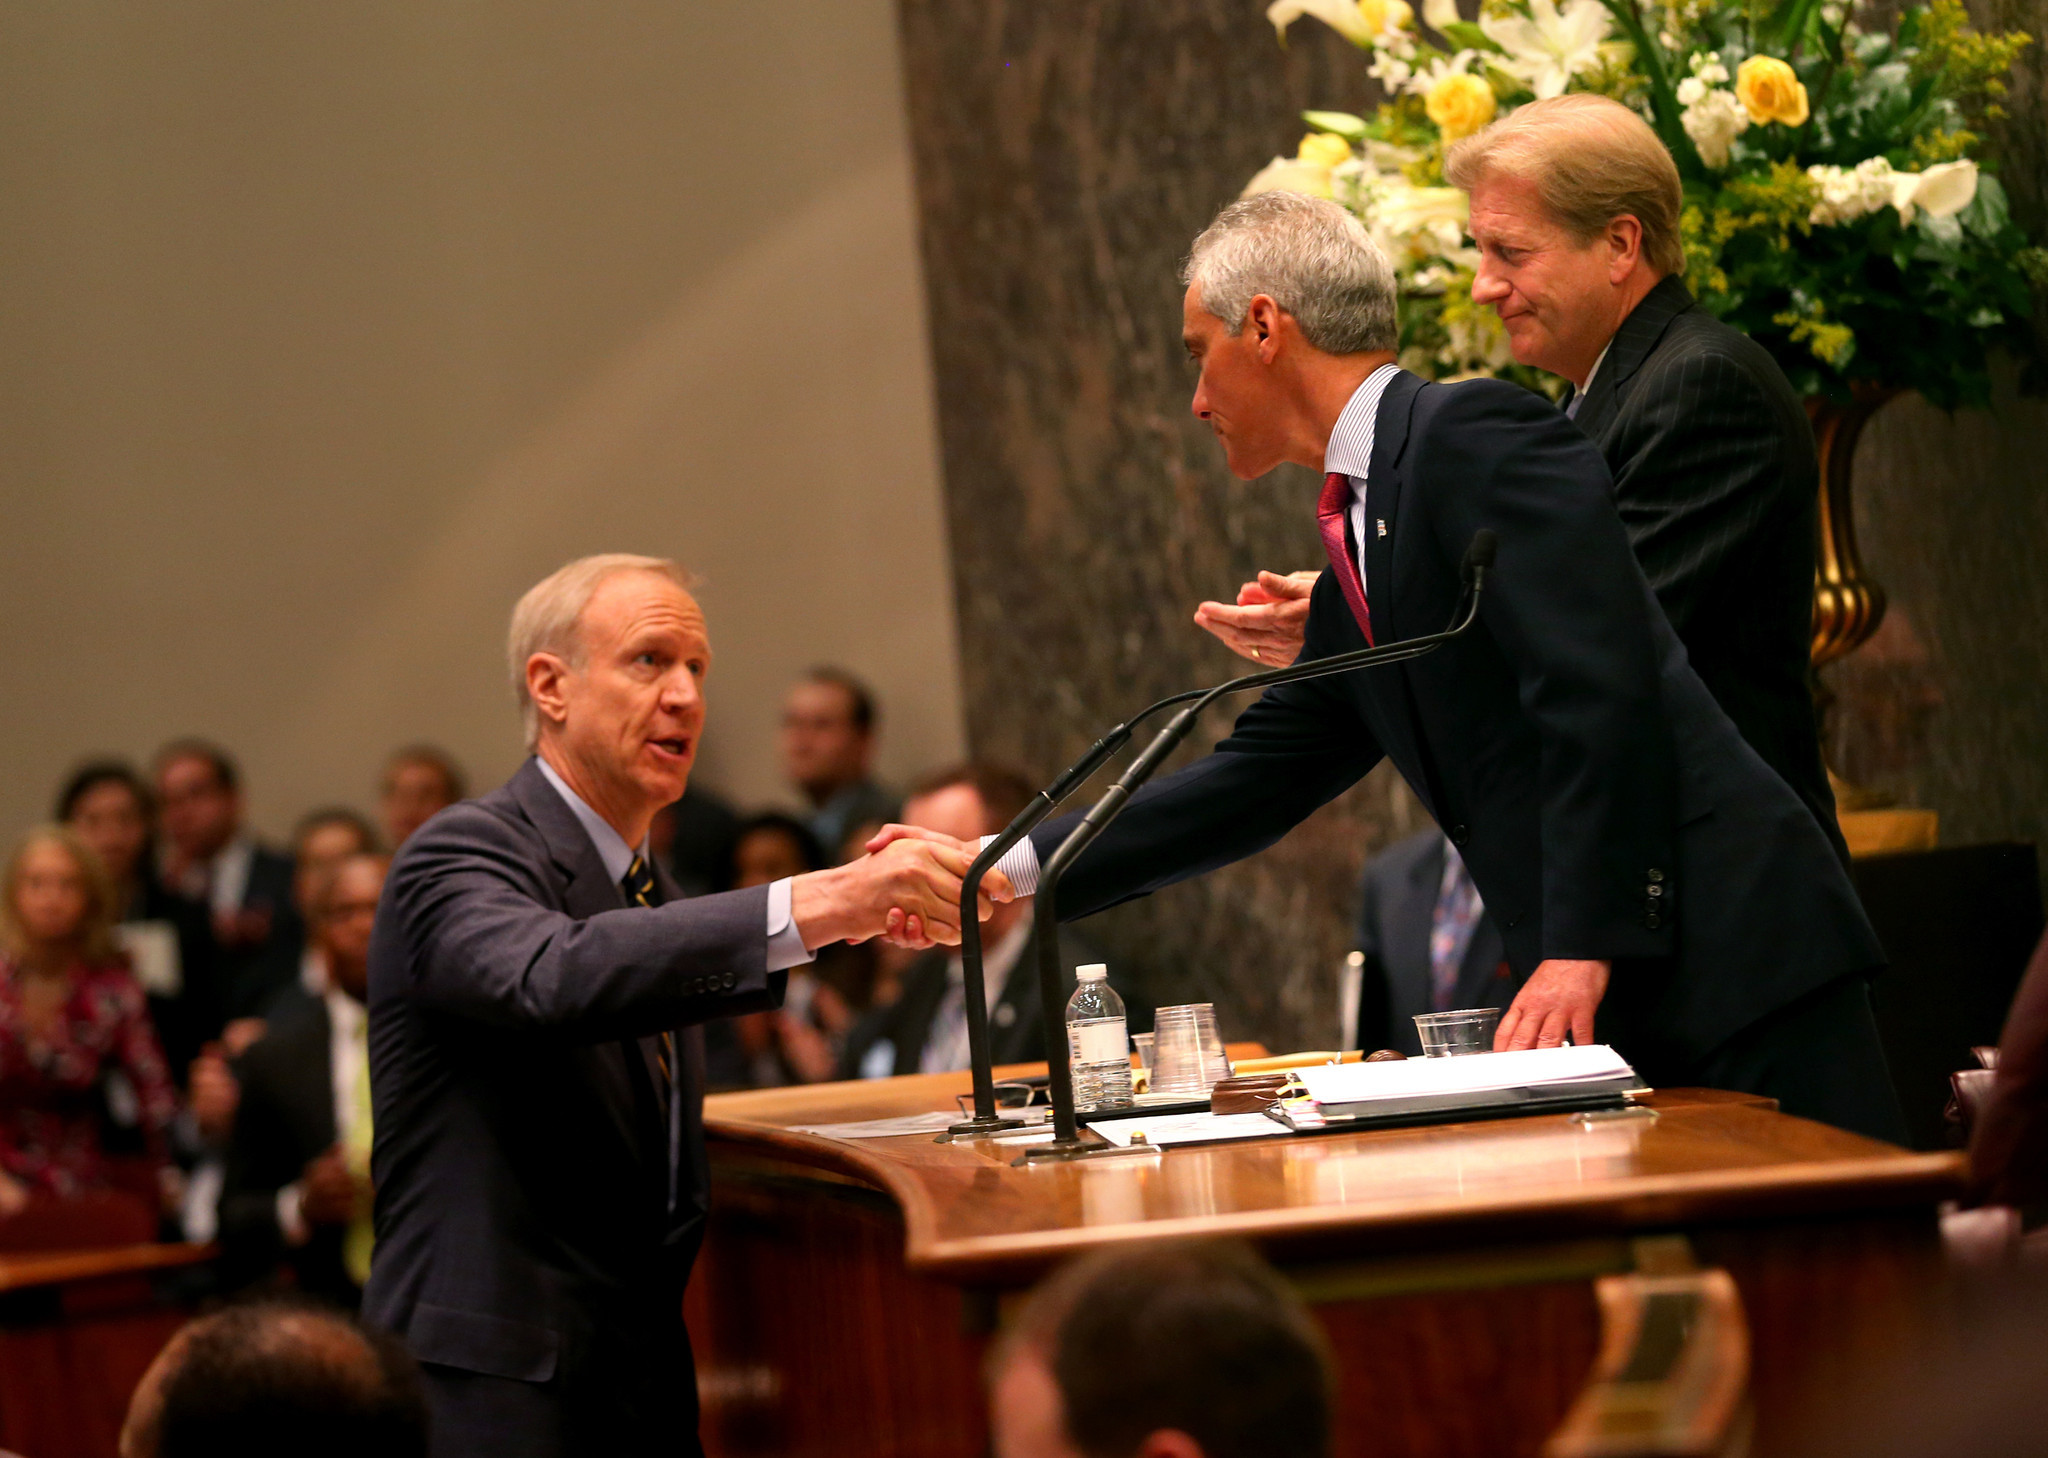 Rauner To Aldermen: 'For Chicago To Get What It Wants